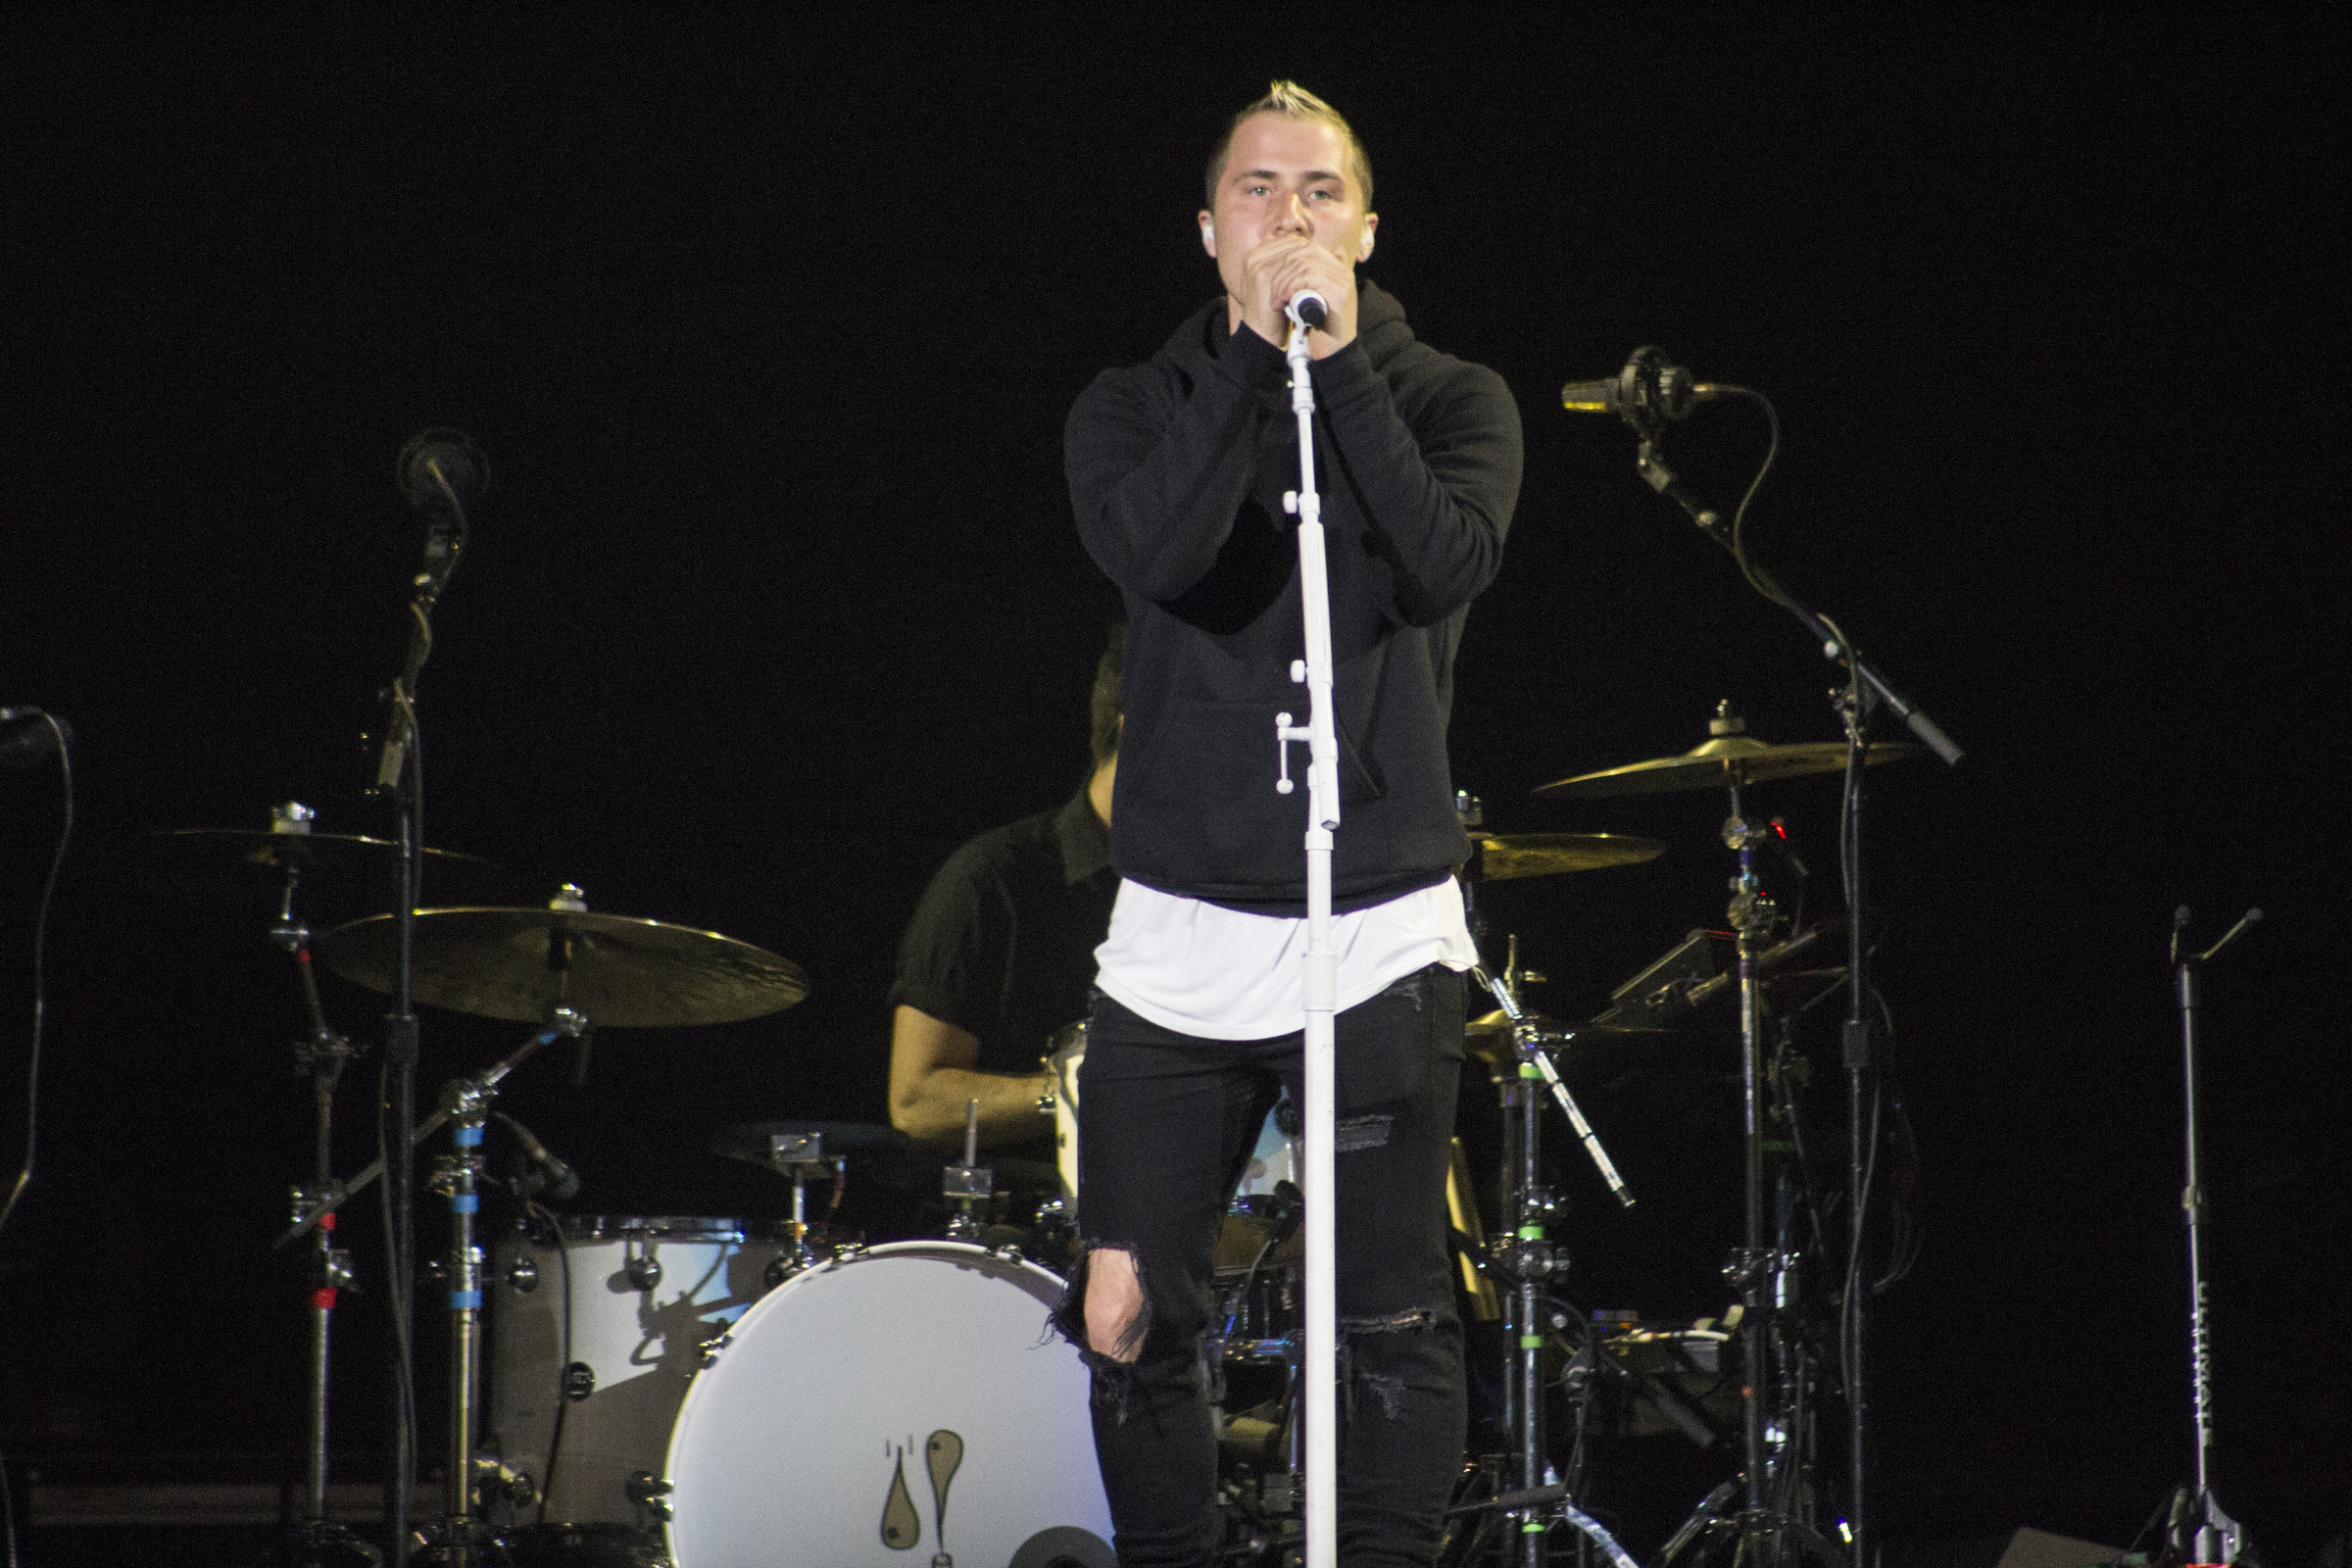 Mike Posner performing on the Future Now Tour in Chicago - August 2, 2016